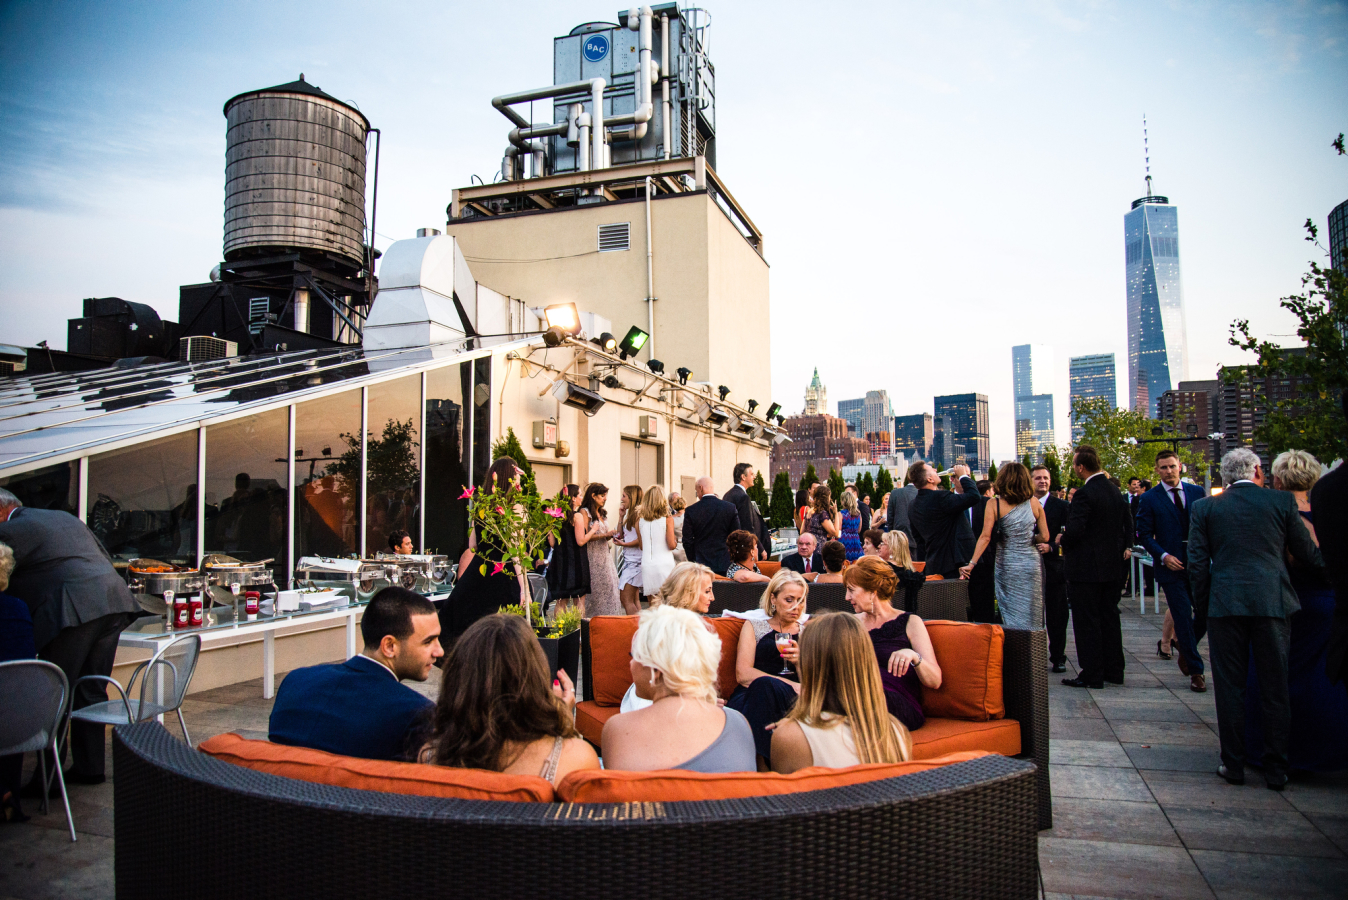 Tribeca Rooftop event space at Tribeca Rooftop in New York City, NYC, NY/NJ Area